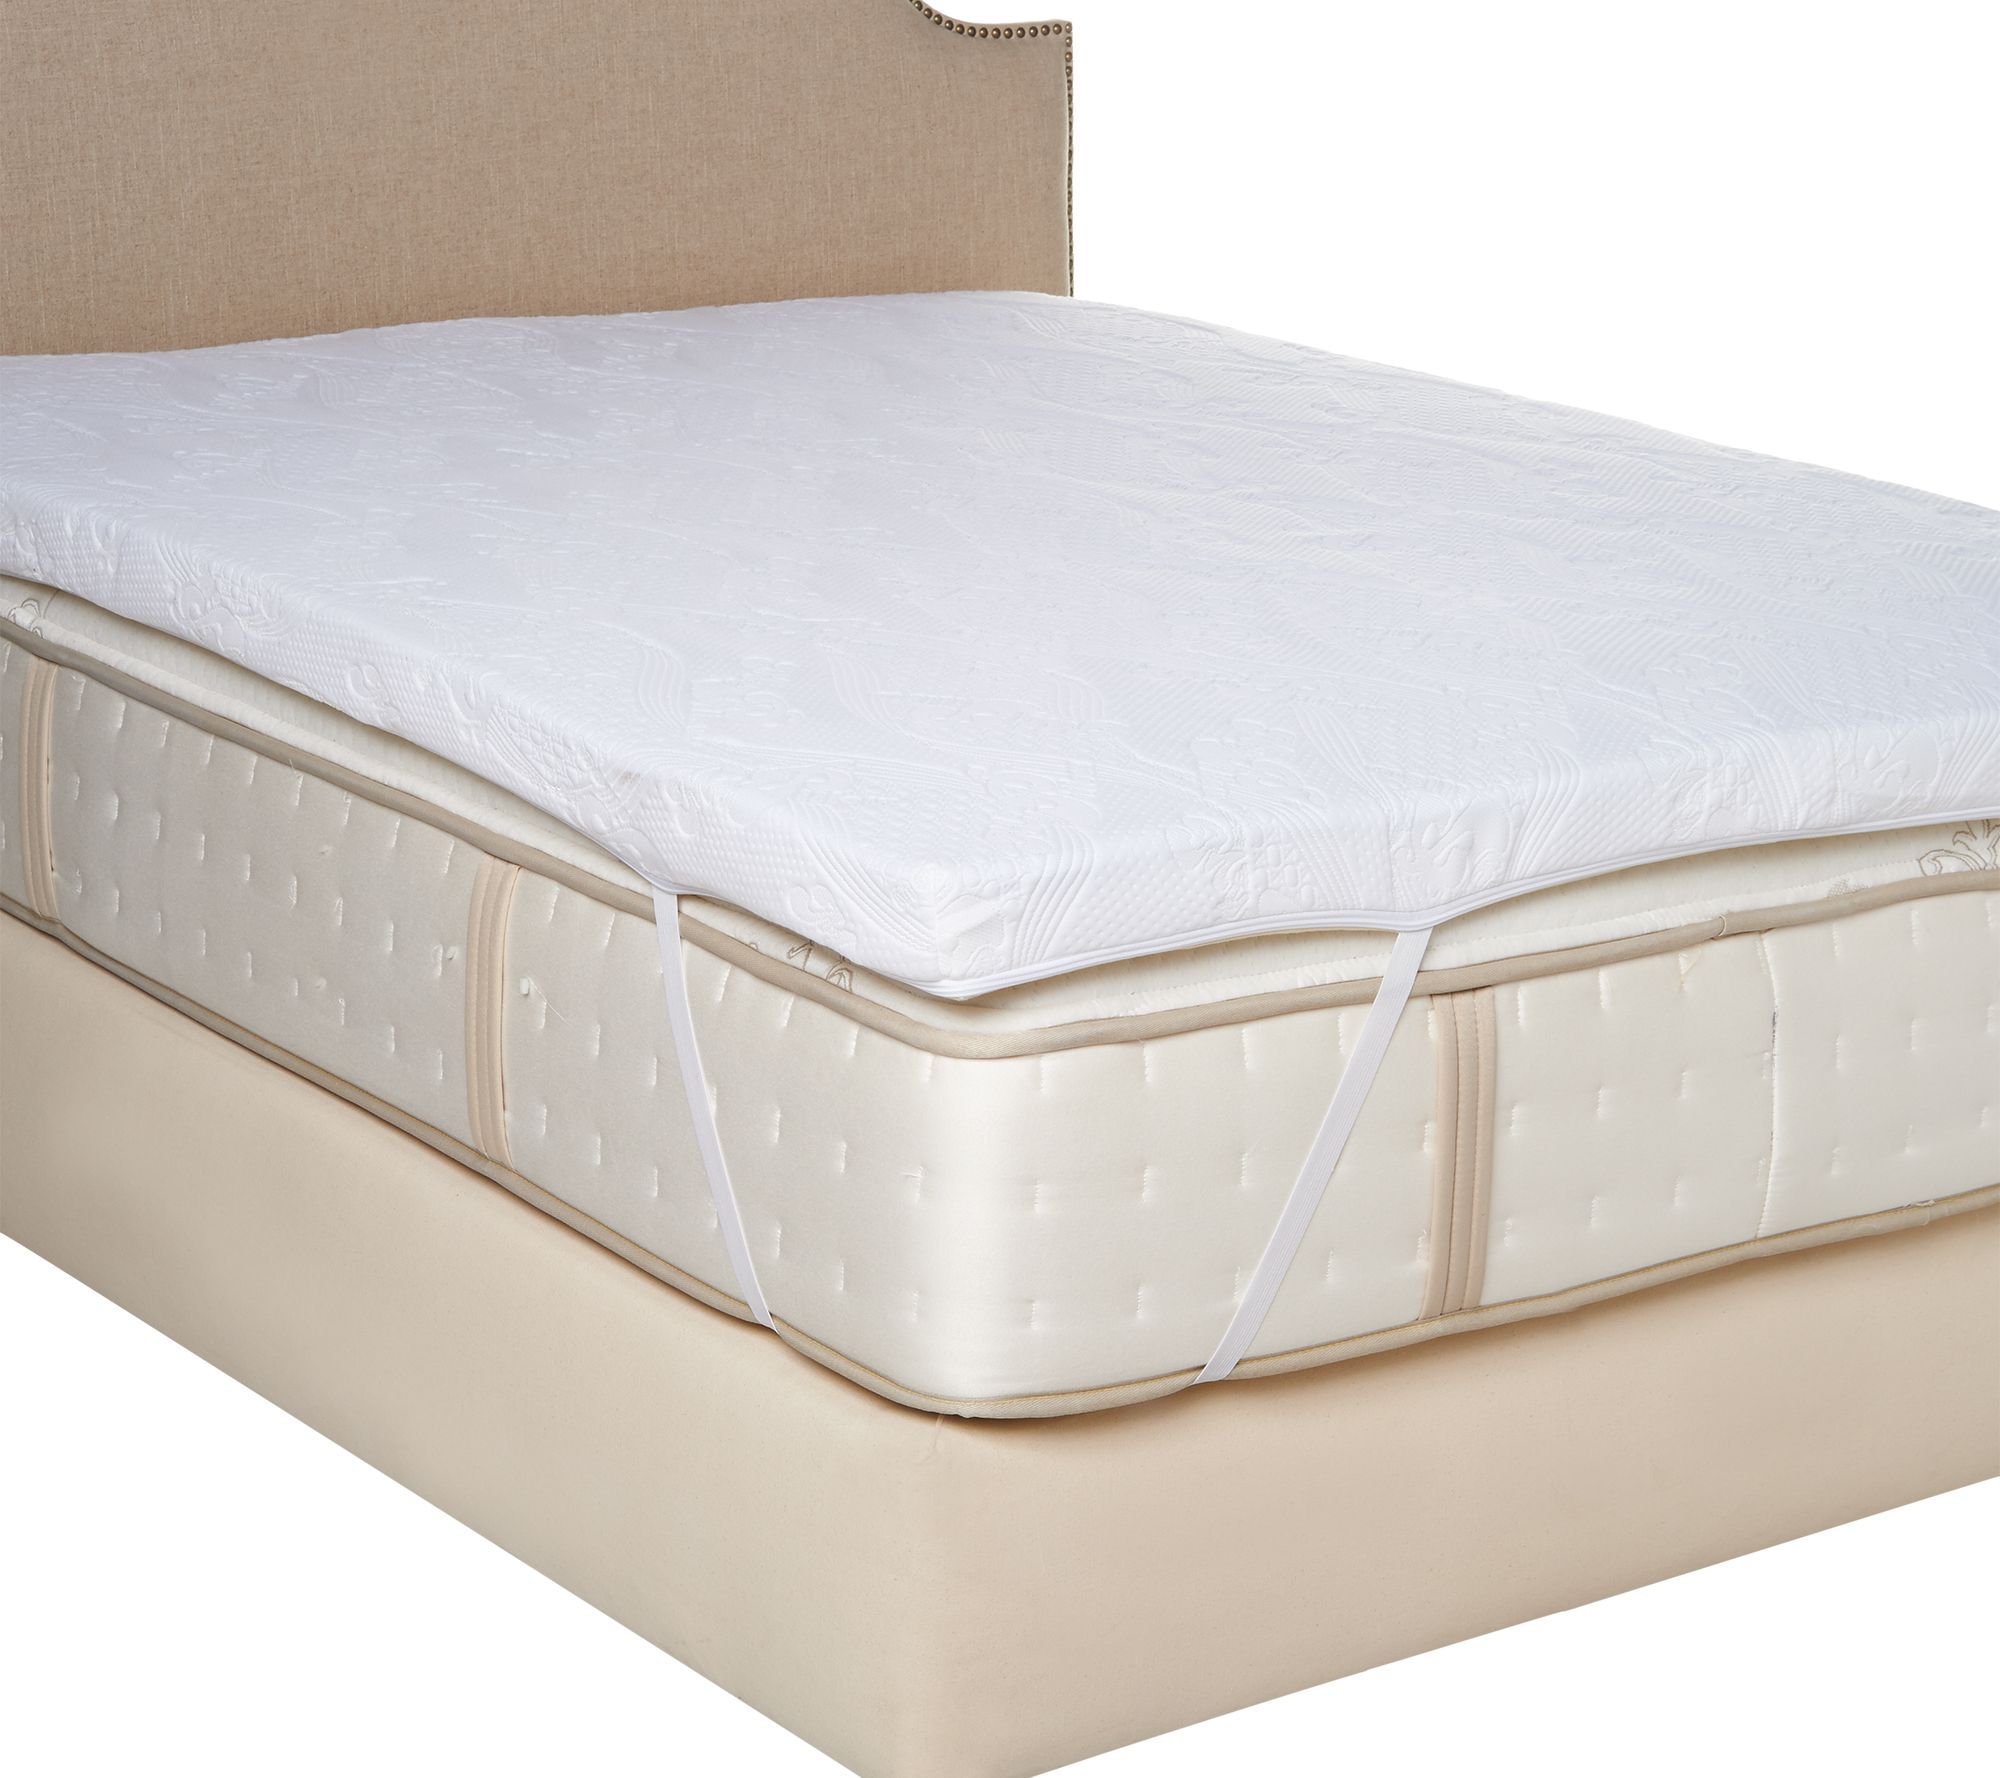 Mypillow Premium 3 Qn Mattress Topper With Gel And Dreamknit Cover Page 1 Qvc